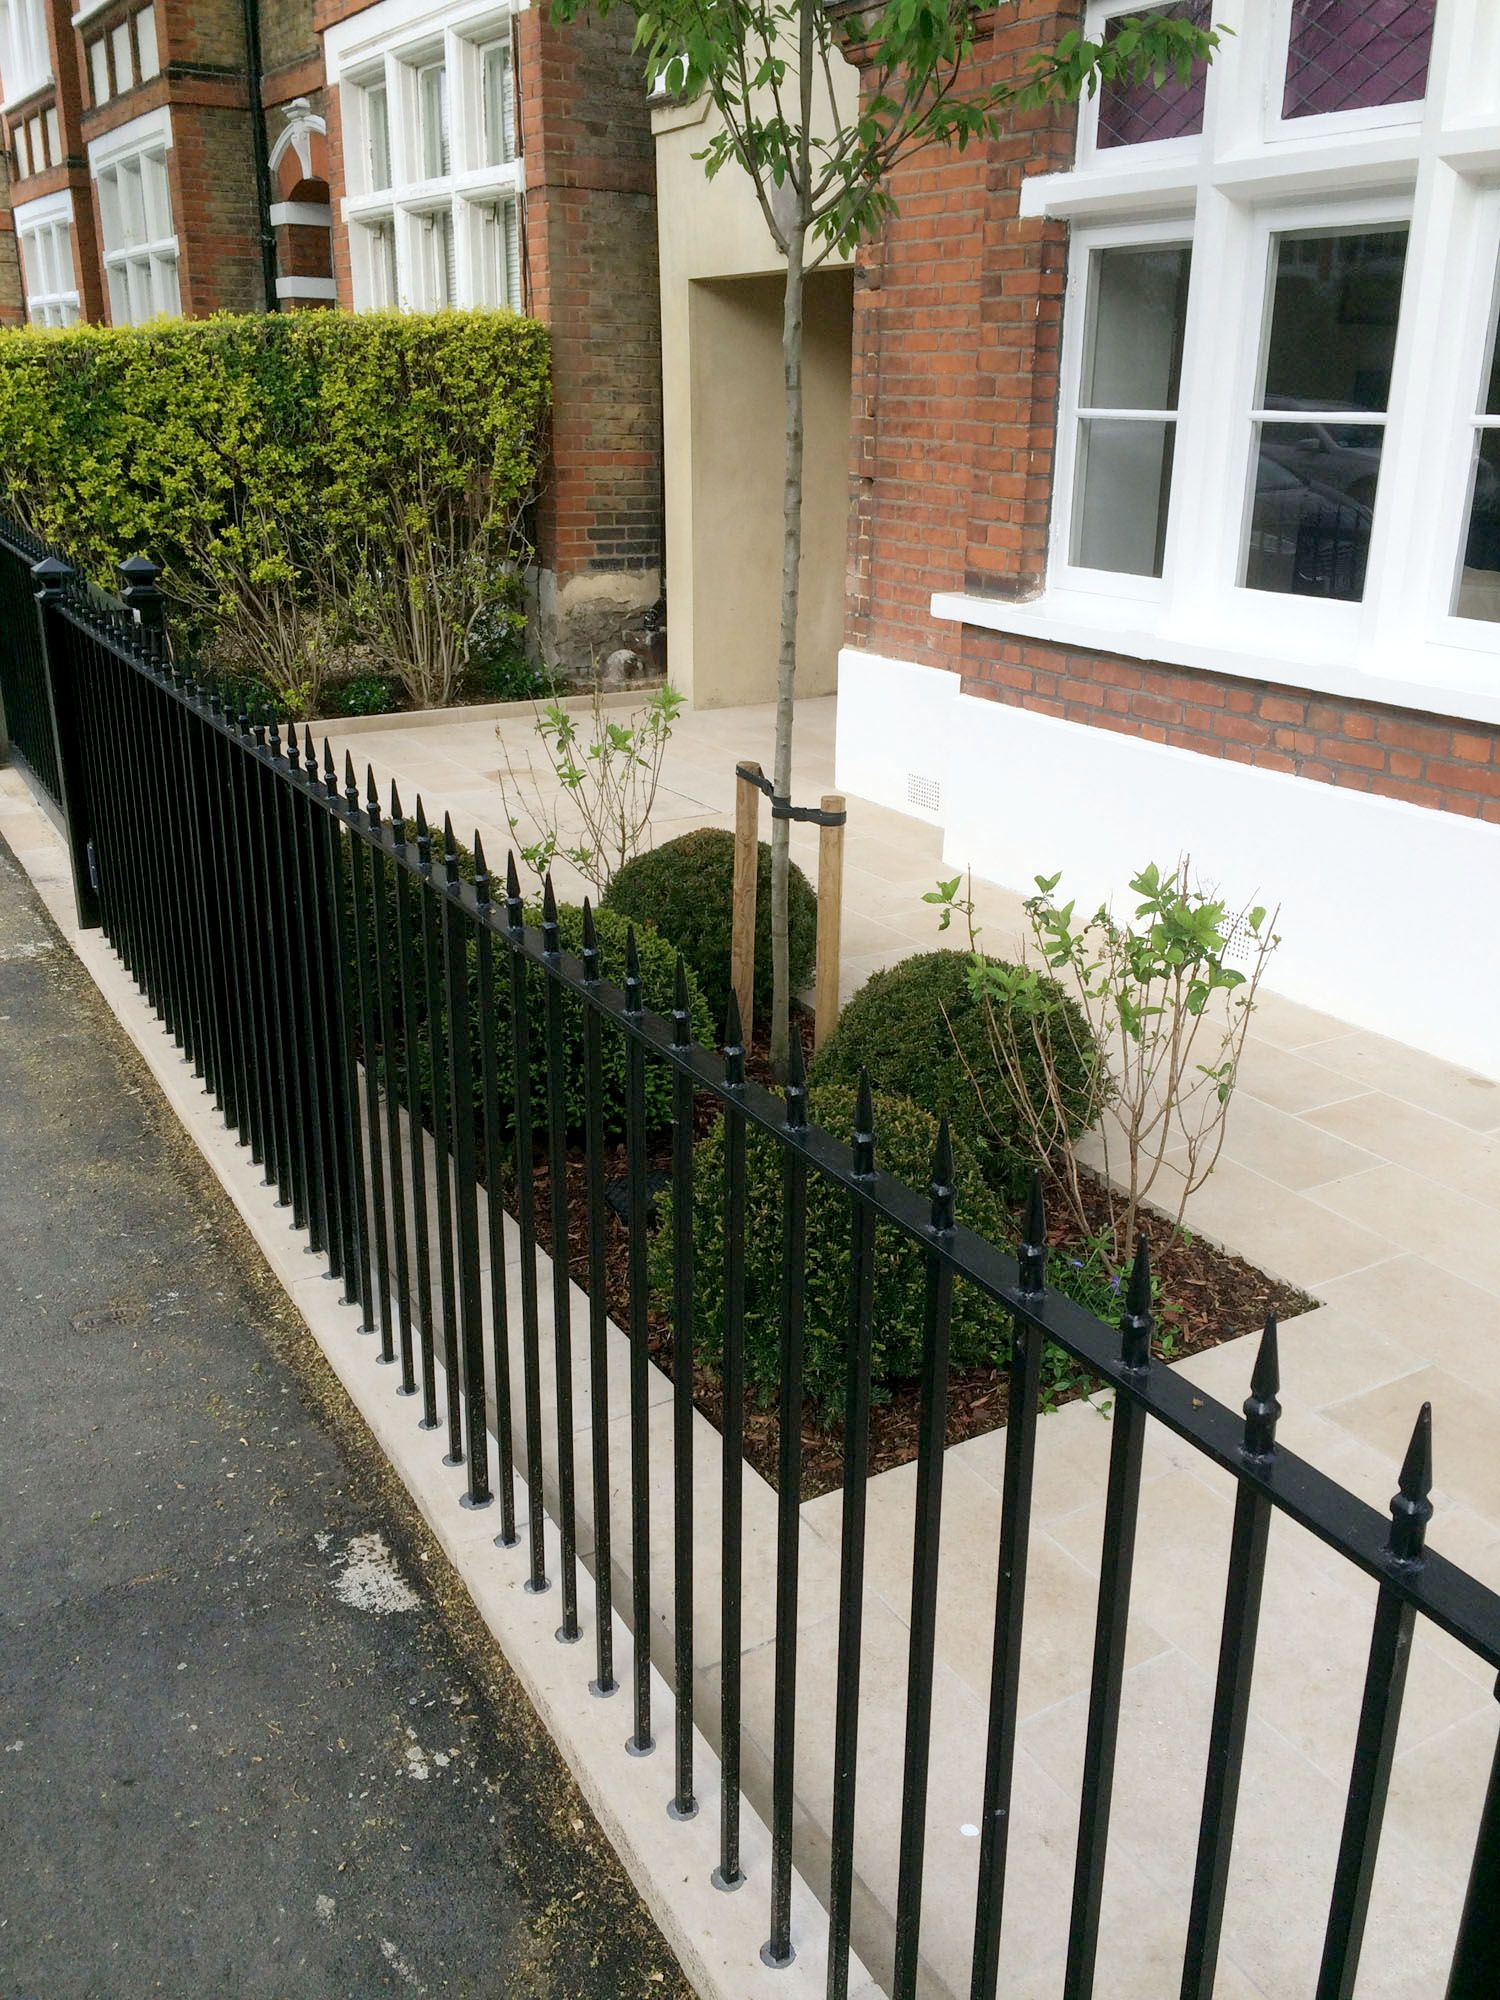 Black cast iron railings and stone paving in contemporary London